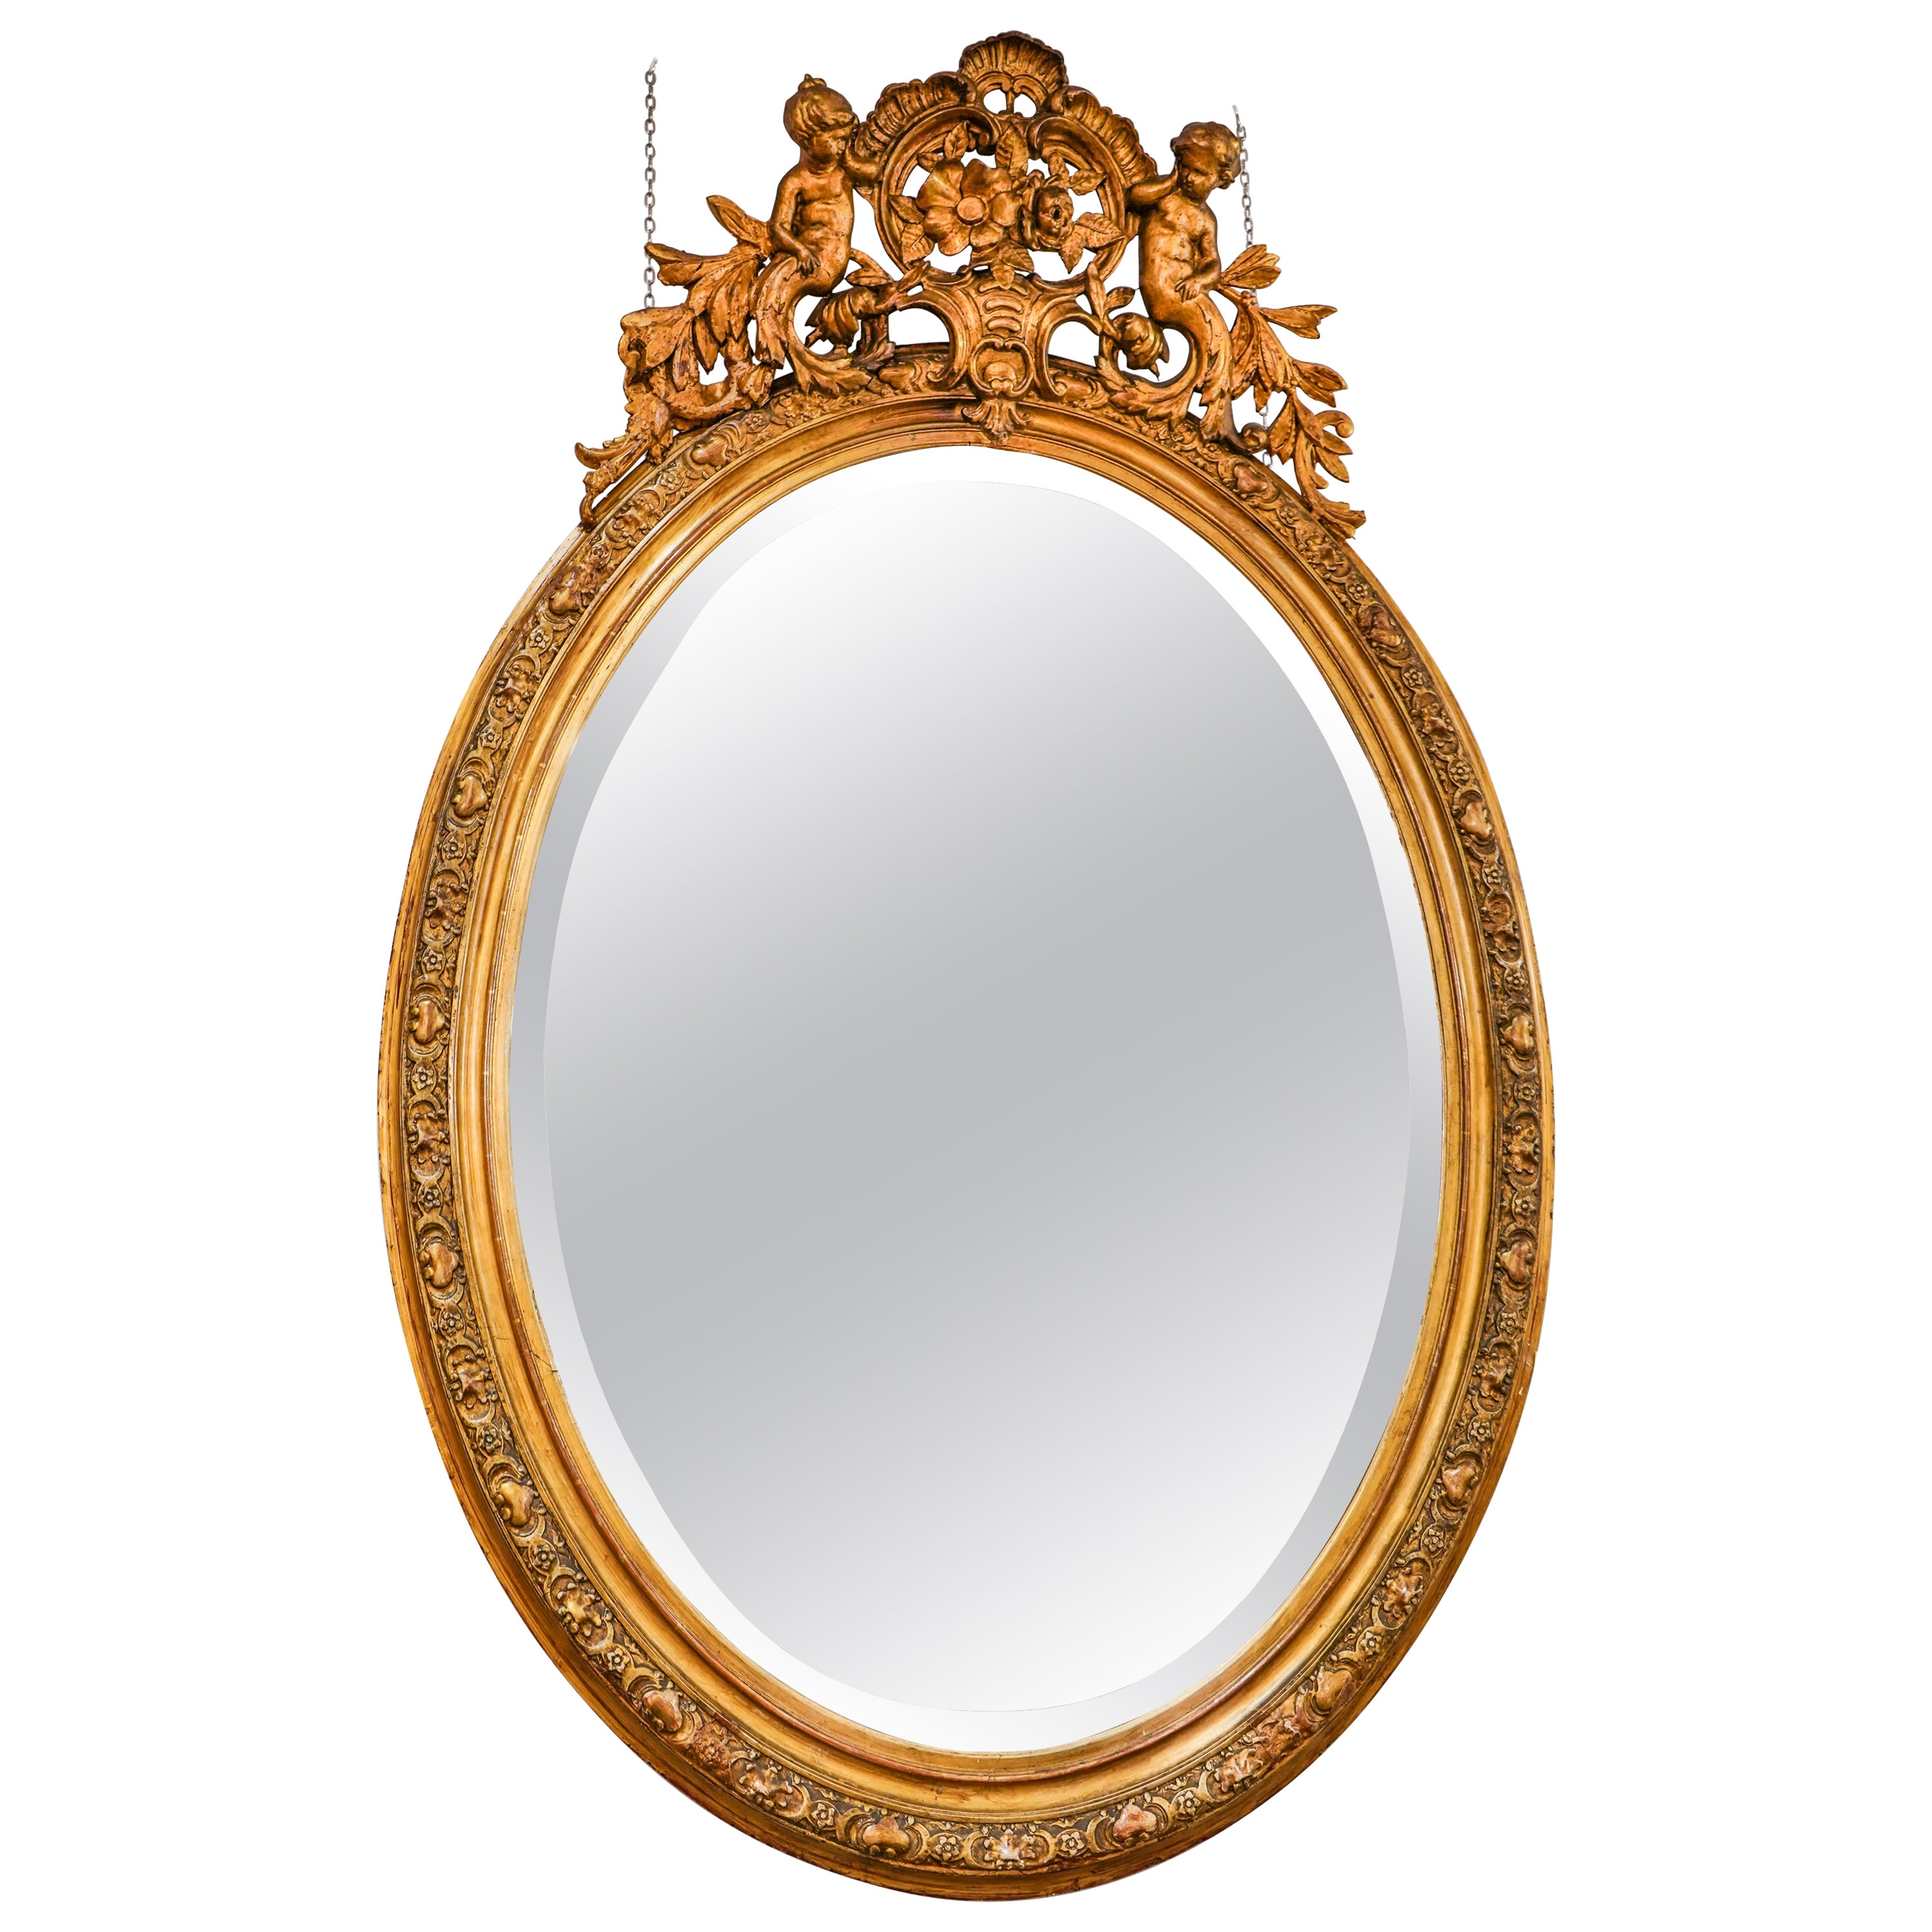 19th Napoleon III Mirror , Carved Gild French Oval Wall Mirror